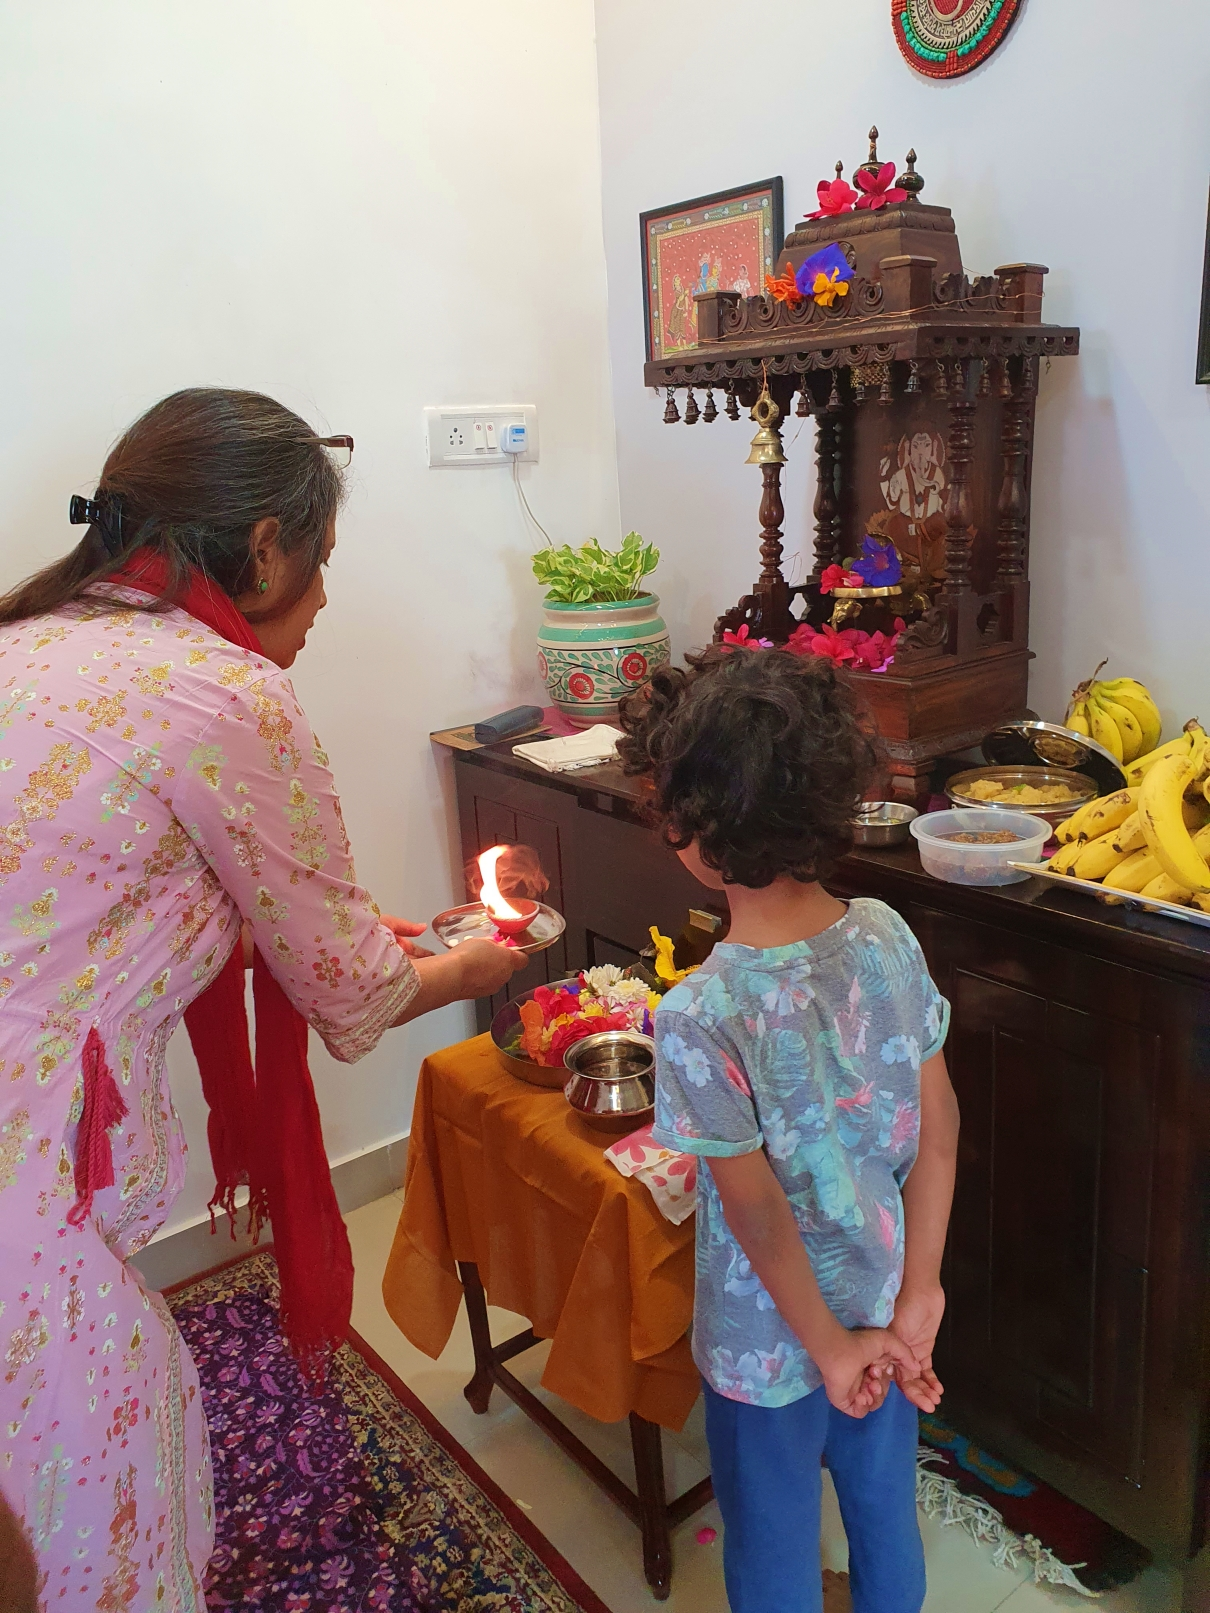 Child learning Hindu religious customs and praying with his grandmother